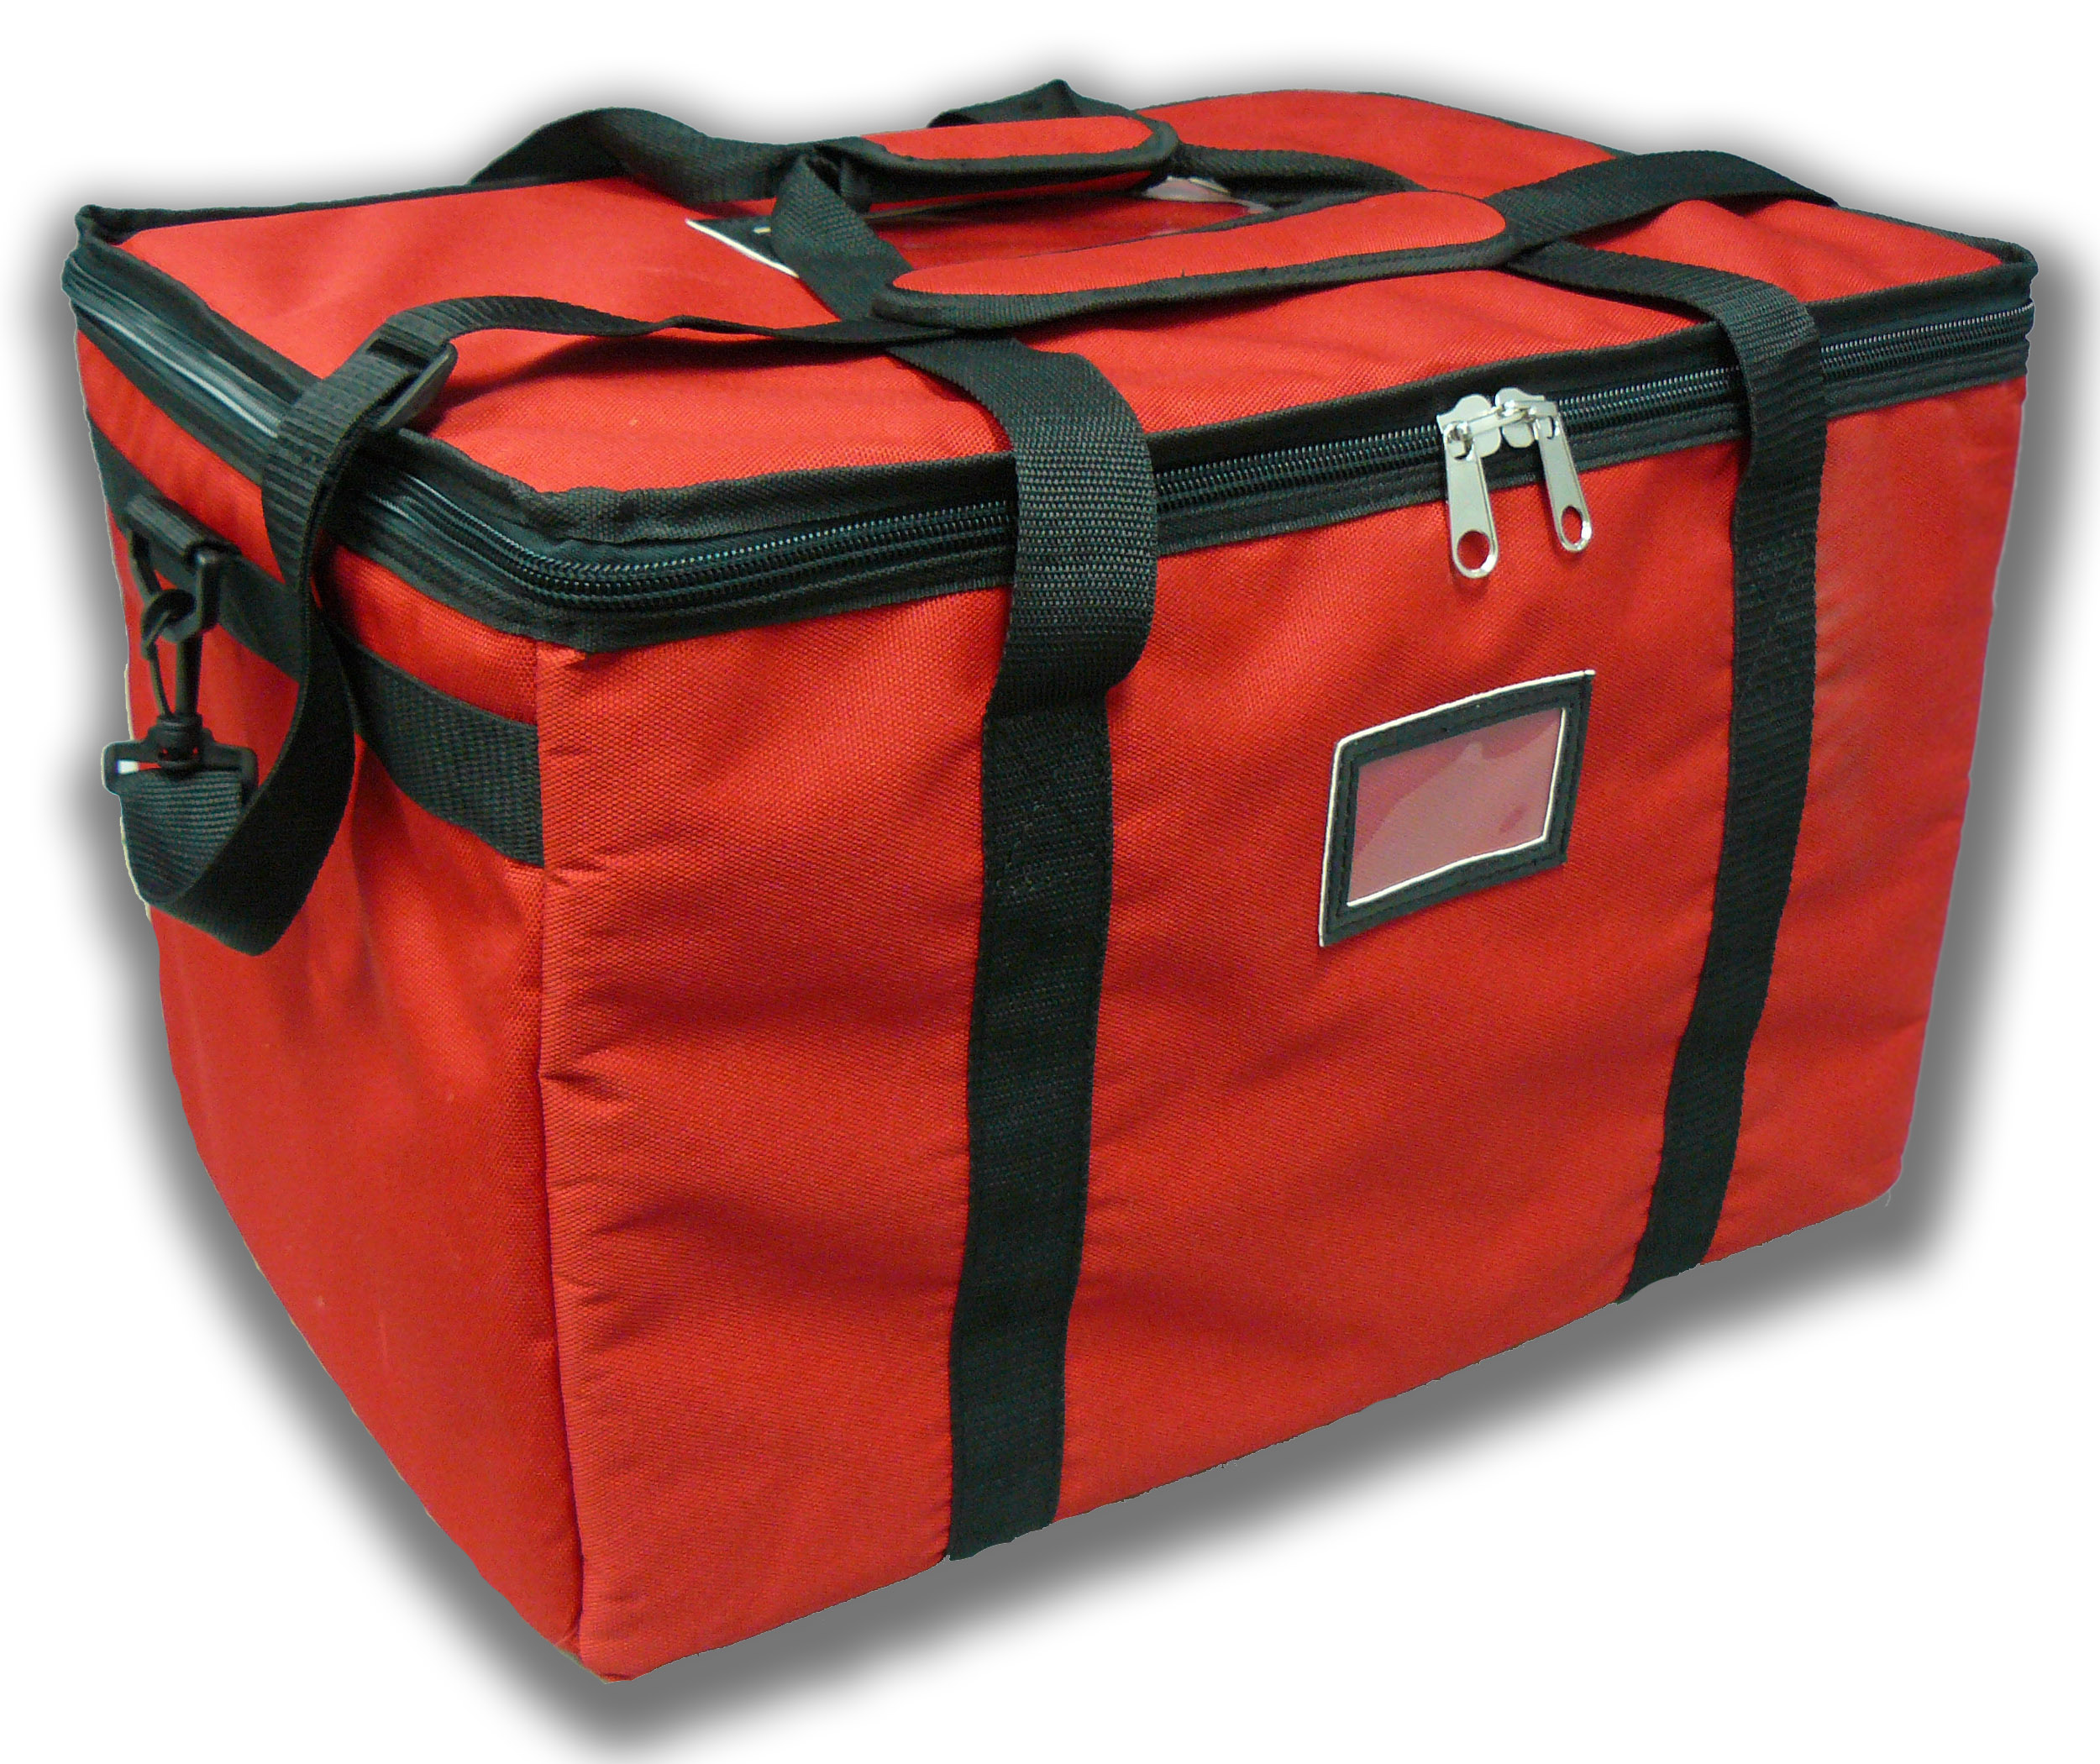 64b4fa4629ba Insulated Food Delivery Bags, Insulated Bags, Heat Bags, Cool Bags